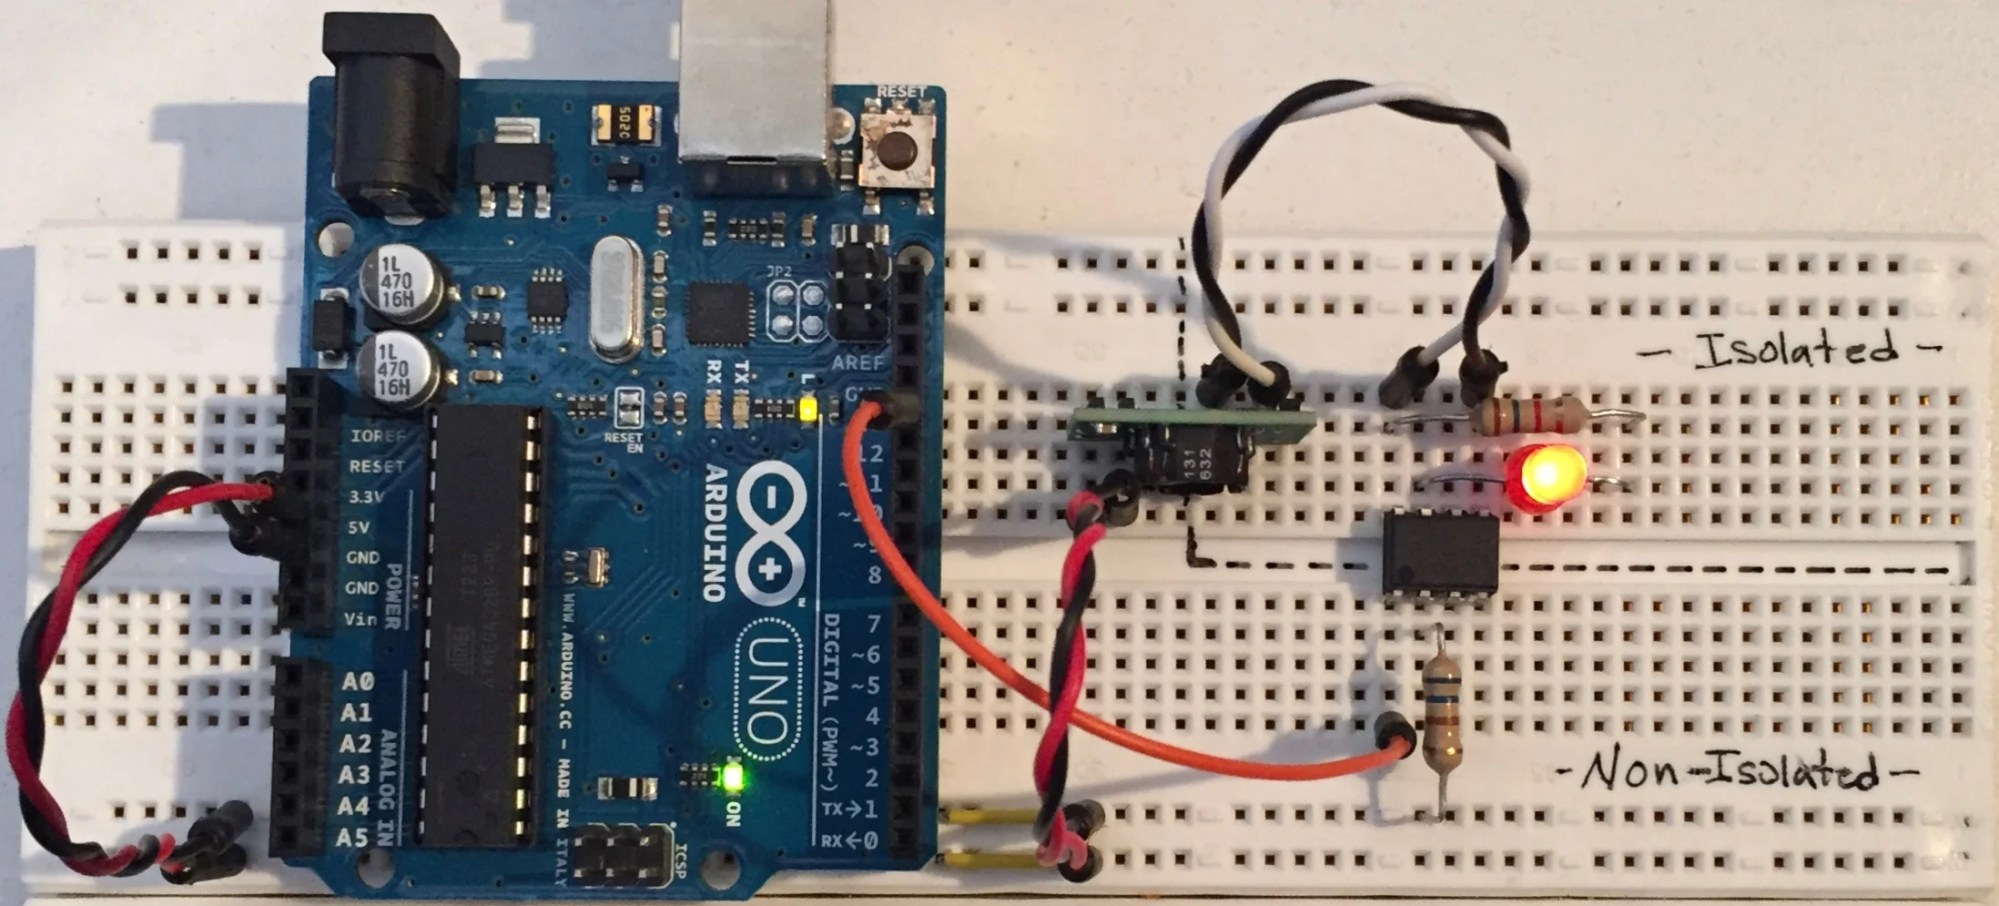 hight resolution of blink turns on an led on for one second then off for one second repeatedly most arduinos have an on board led you can control on the uno and leonardo